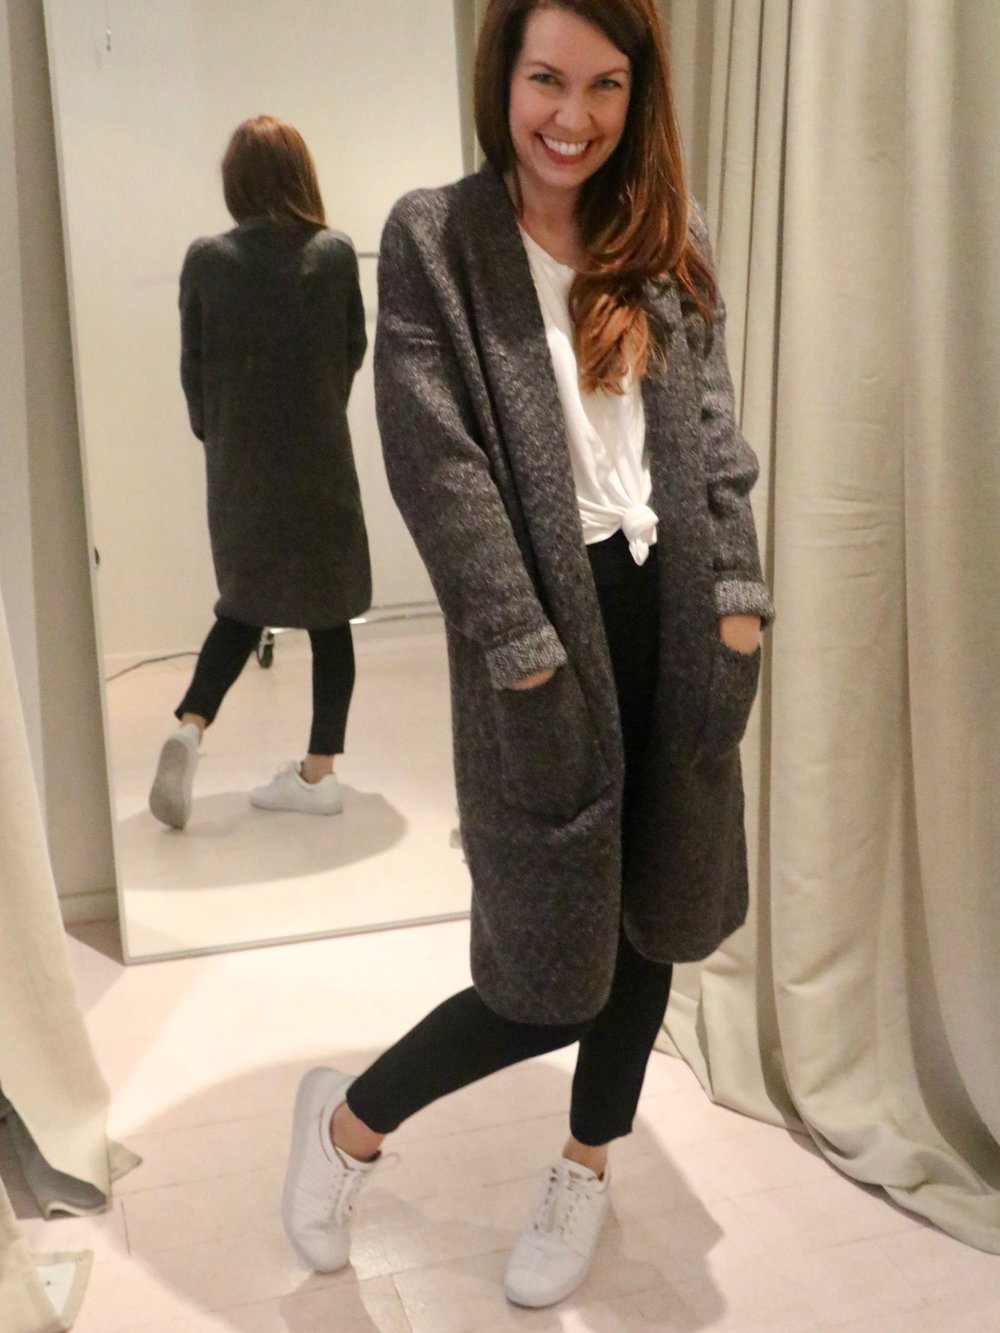 Minnie Oversized Sweater Coat $92